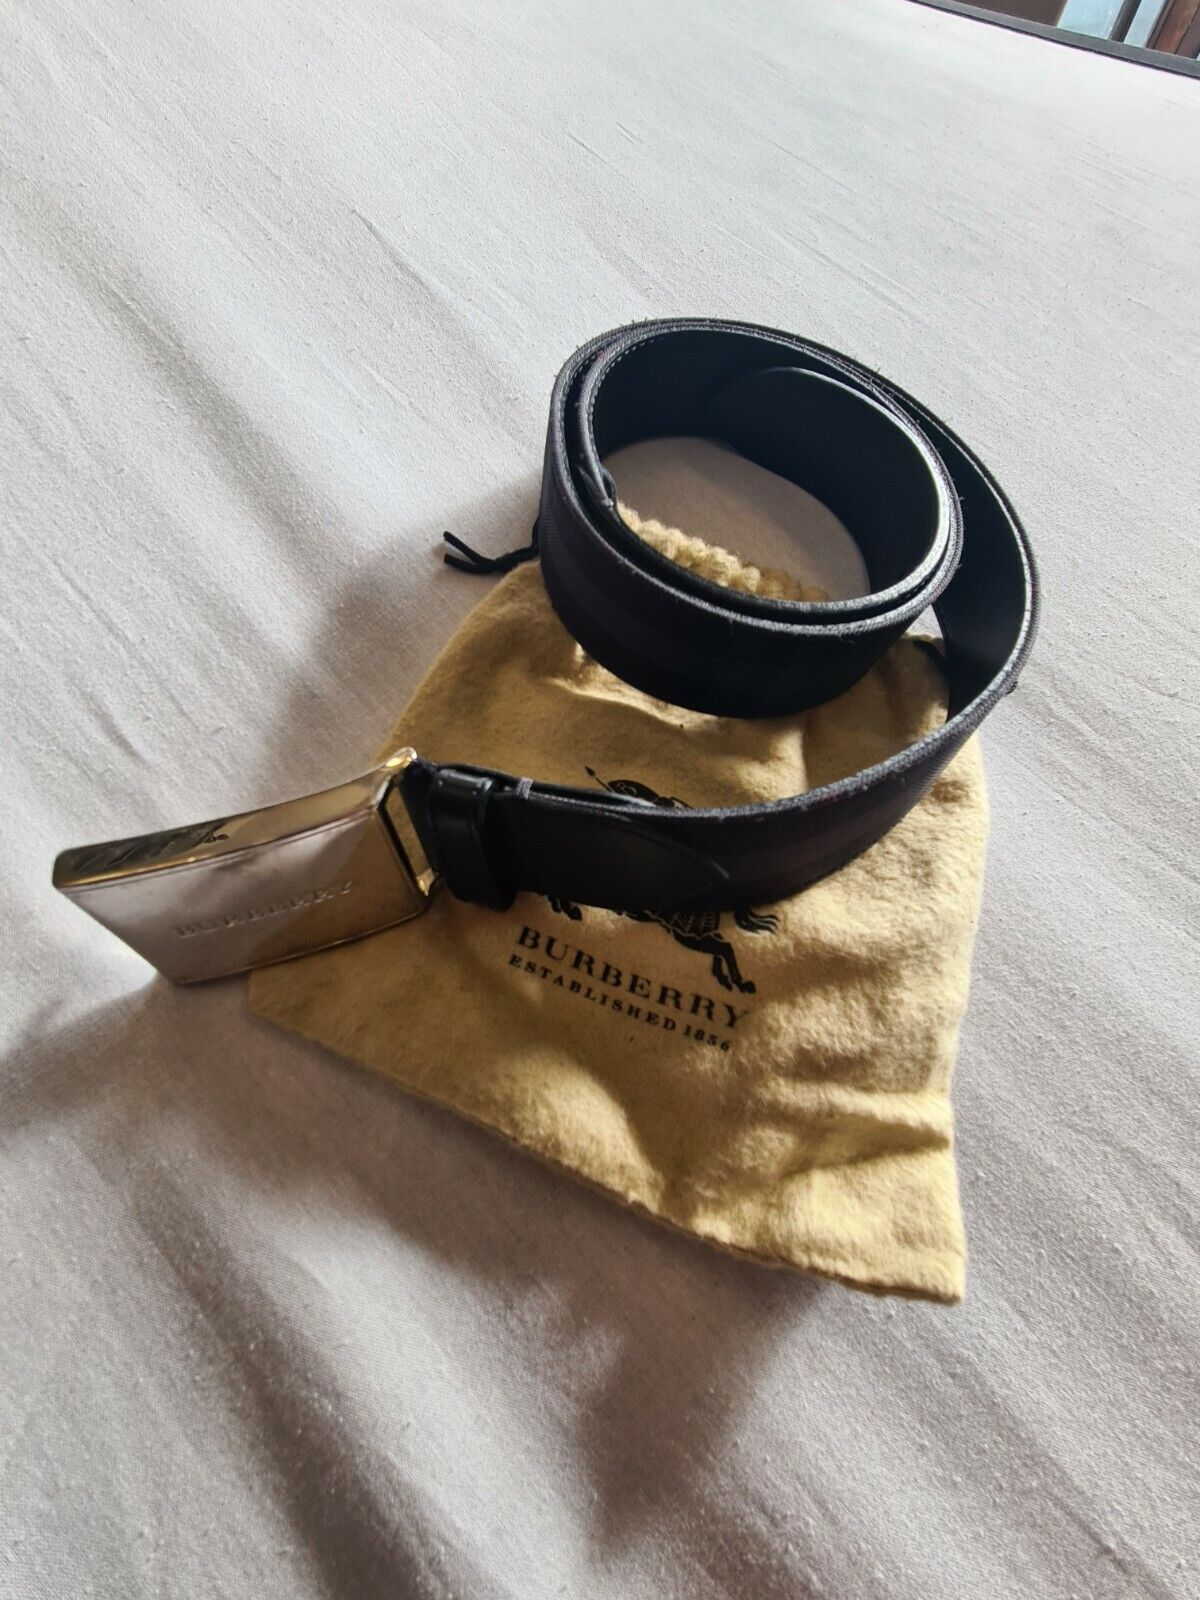 Burberry Belt 36 of 90 with Bag Used Condition